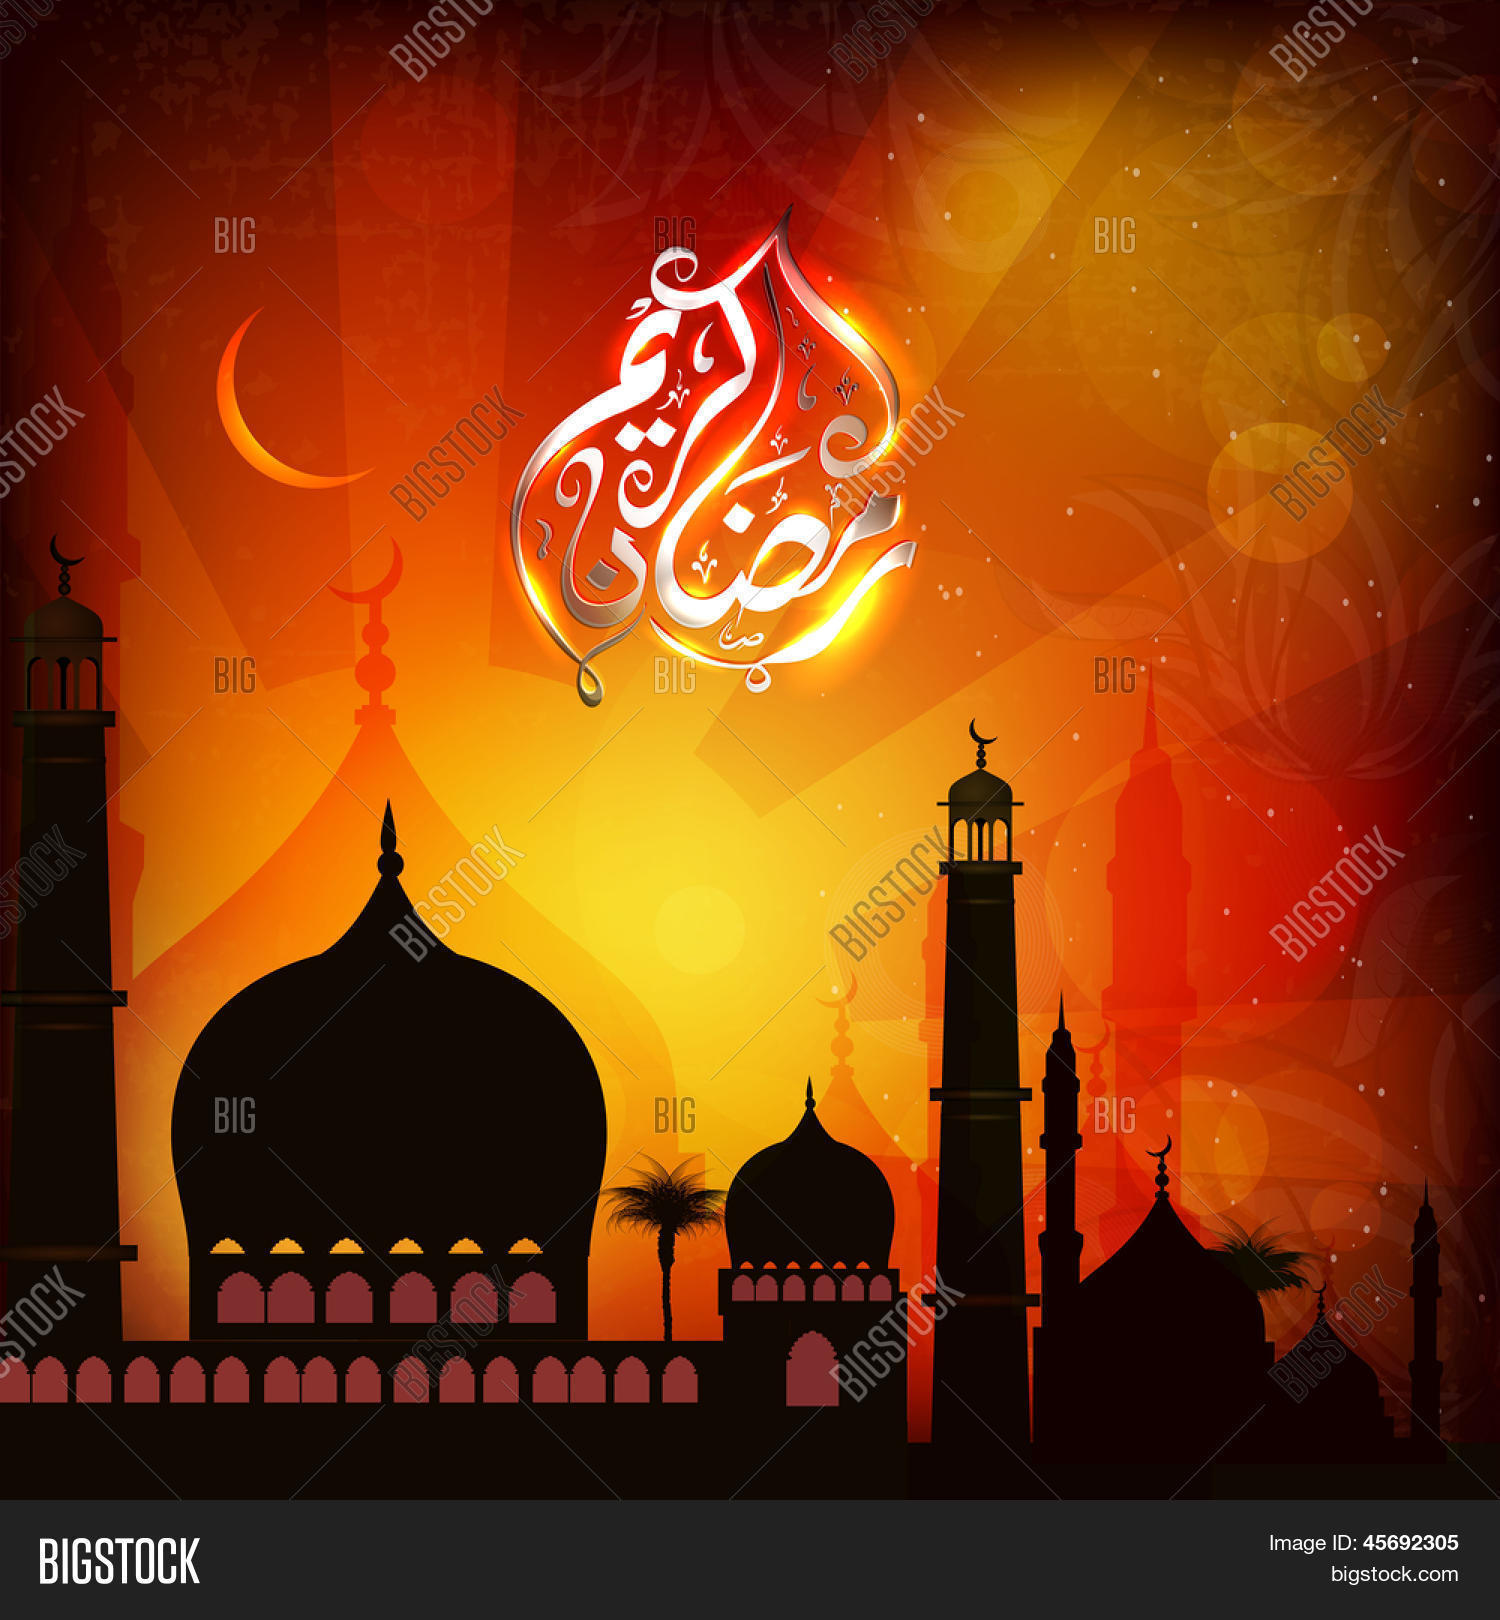 Mosque background for ramadan kareem stock photography image - Arabic Islamic Calligraphy Of Shiny Text Ramadan Kareem Or Ramazan Kareem With Silhouette Of Mosque Or